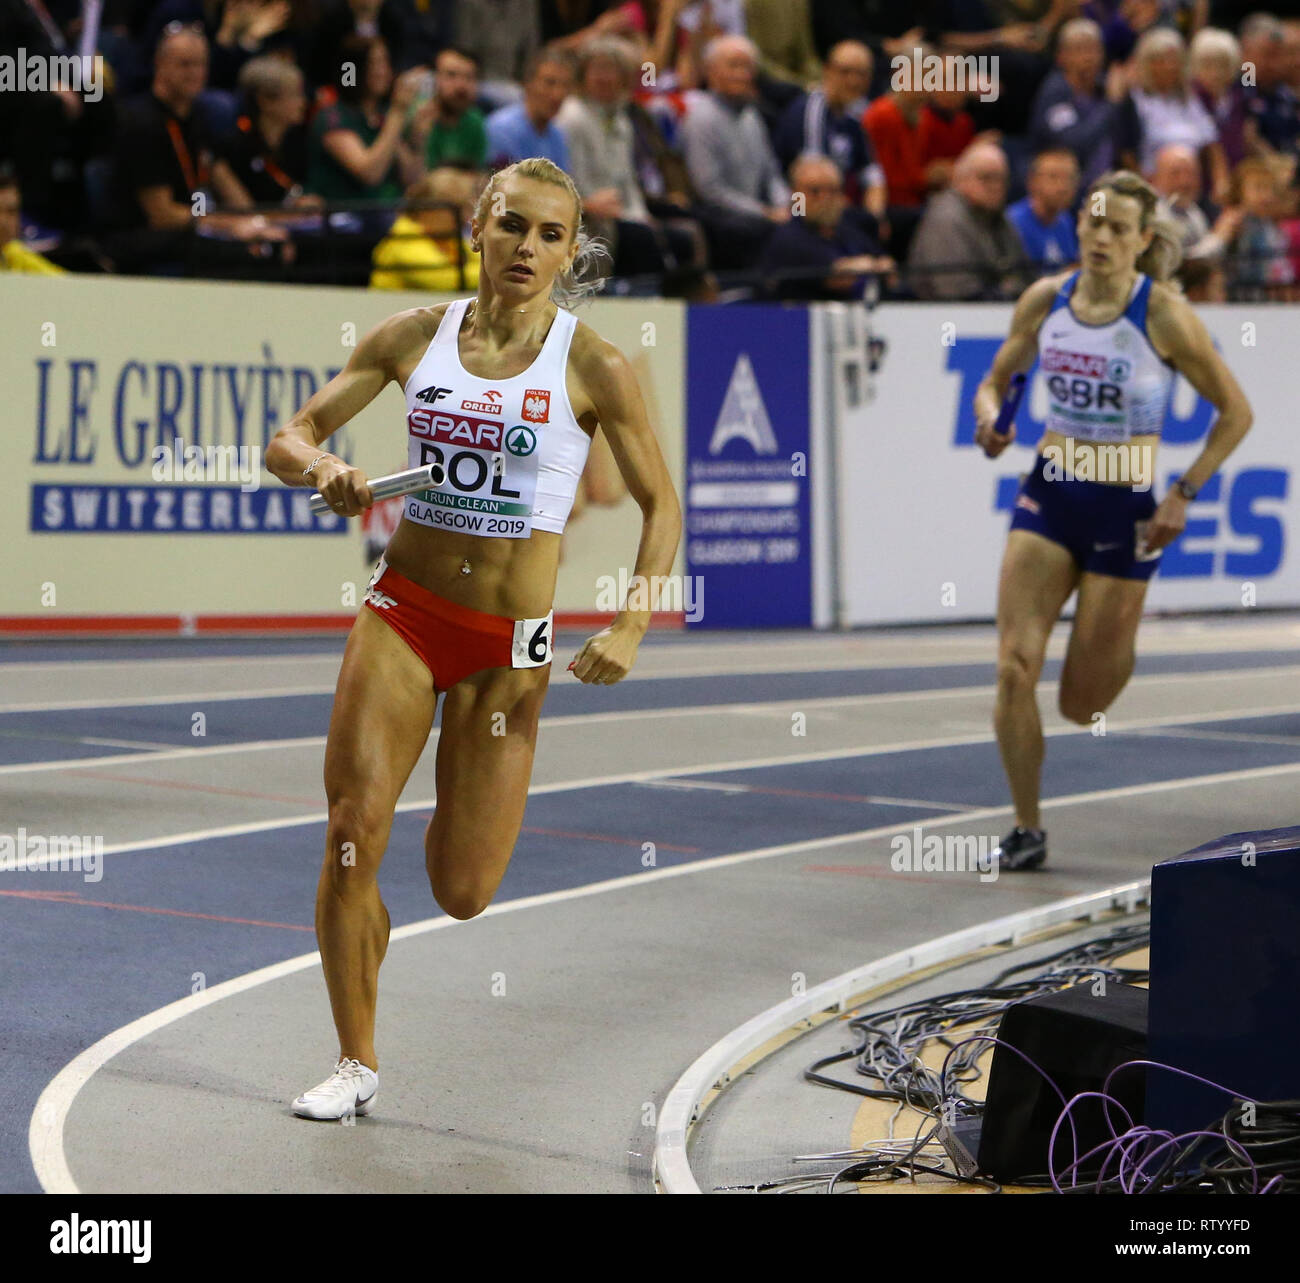 Emirates Arena, Glasgow, UK. 3rd Mar, 2019. European Athletics Indoor Championships, day 3; Justyna Swiety-Ersetic (POL) opens up a gap in front of Eilidh Doyle (GBR) during the womens 4x400m relay Credit: Action Plus Sports/Alamy Live News - Stock Image